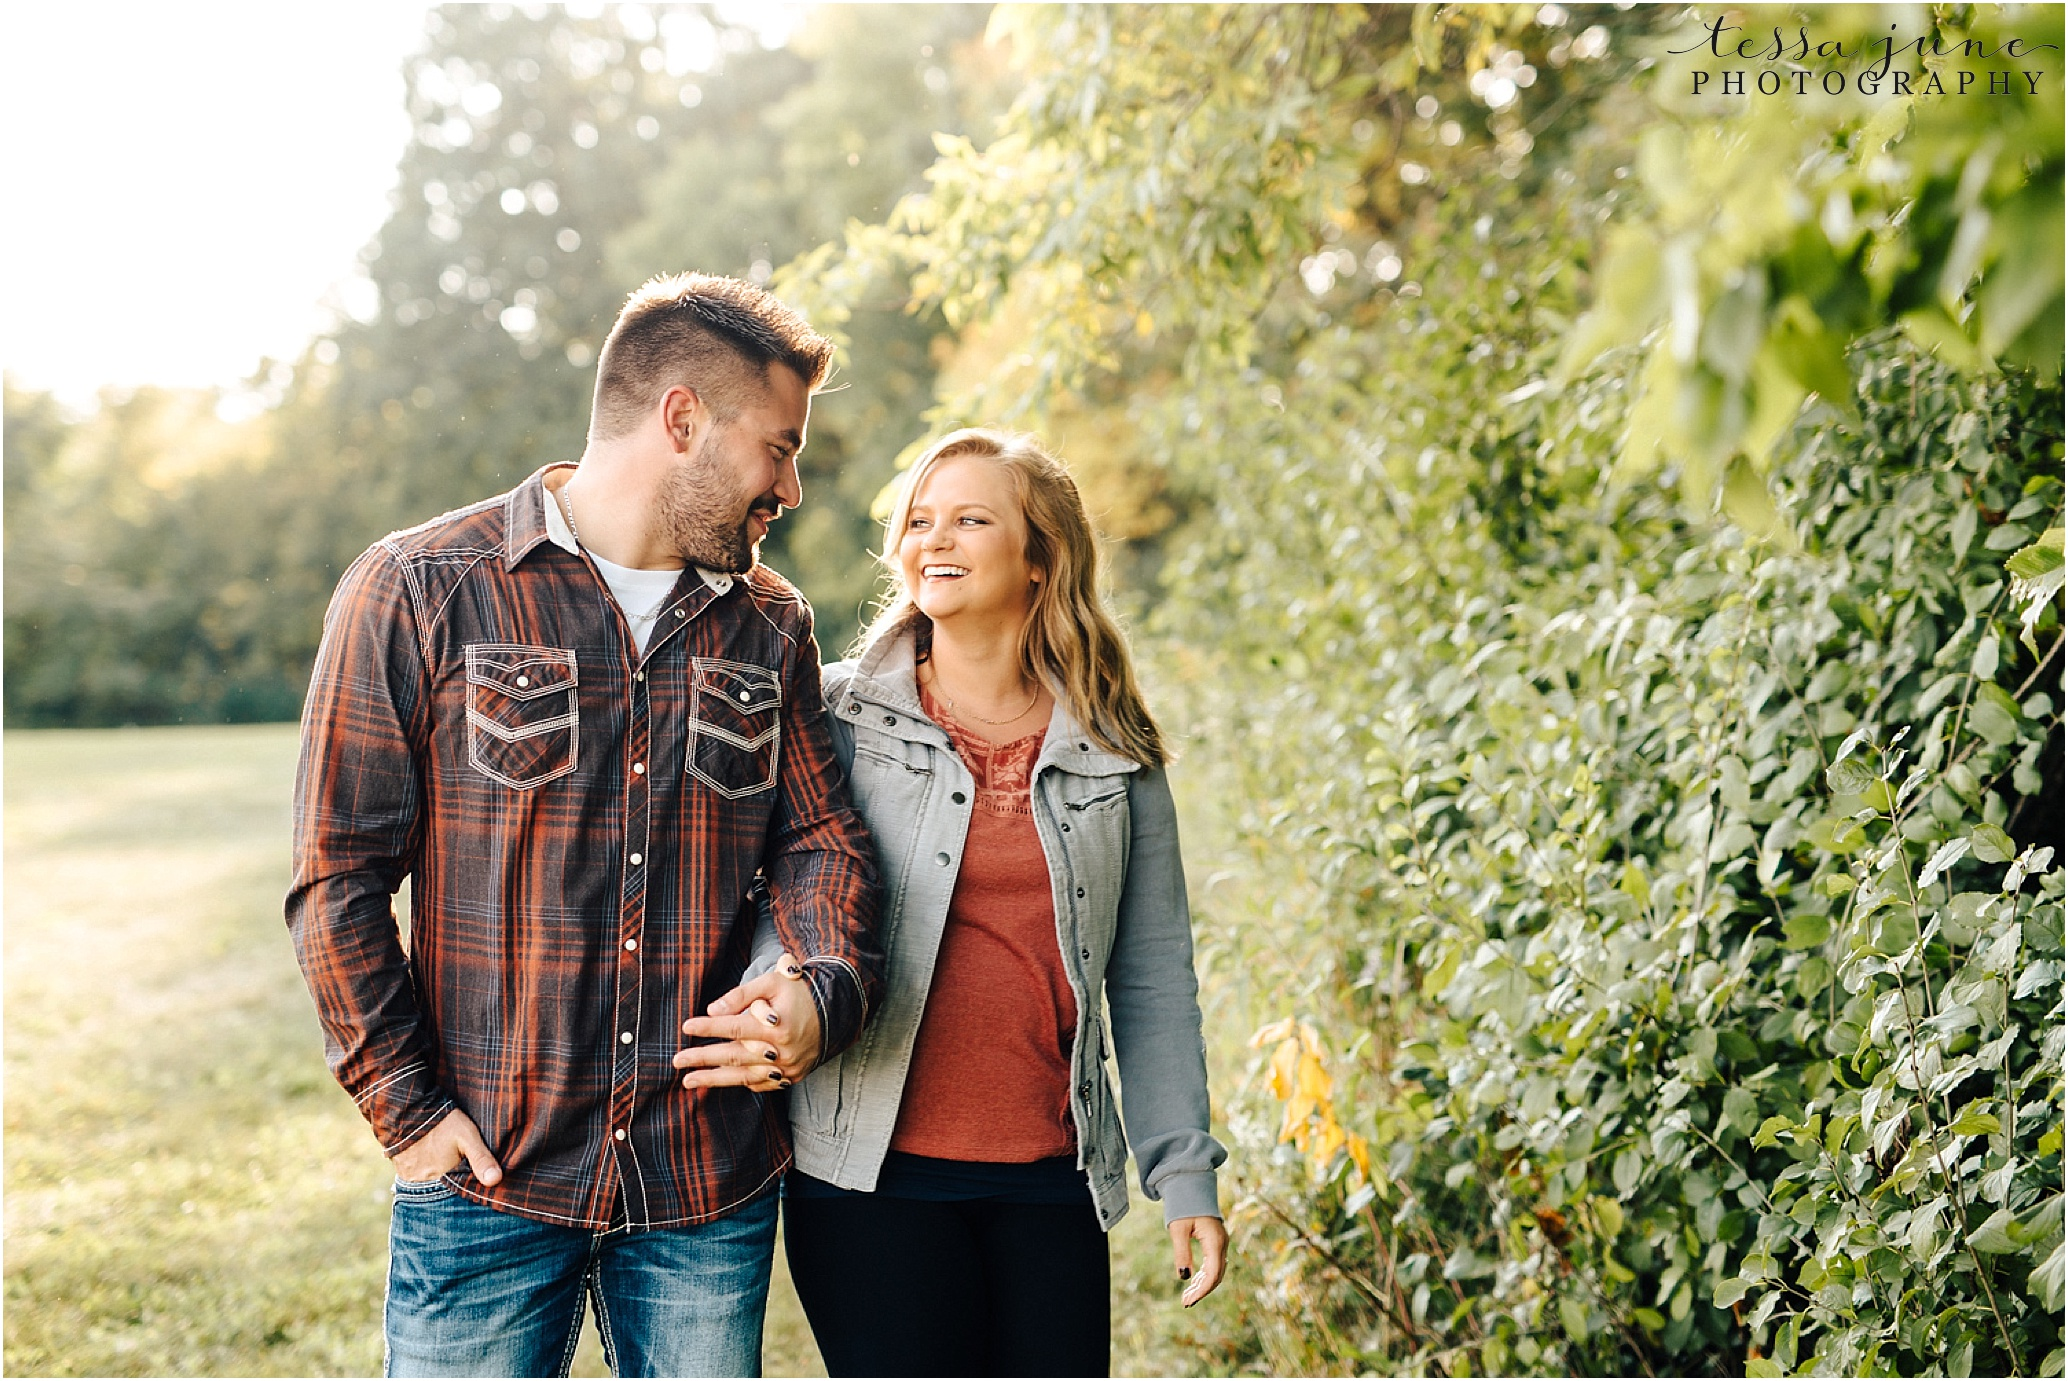 st-cloud-wedding-photographer-engagement-session-with-old-truck-6.jpg